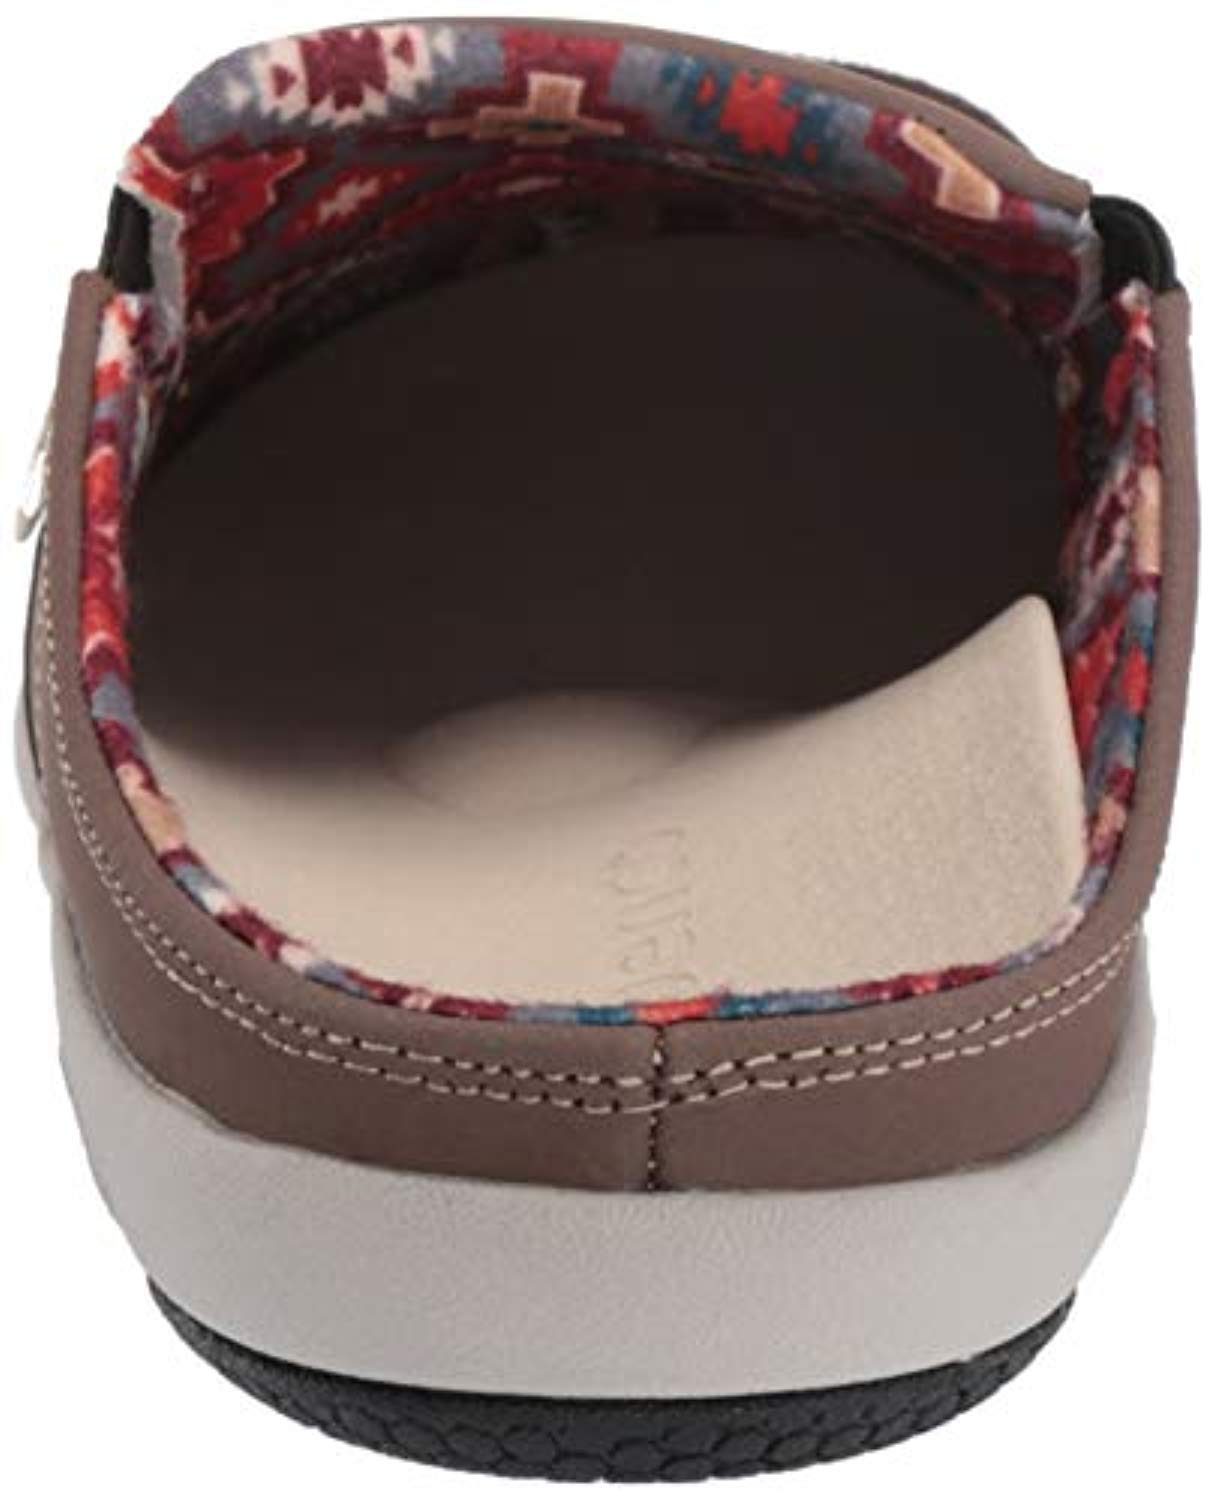 Spenco First Nation Slide Womens Comfort Shoe Mineral - 9 Wide by Spenco (Image #3)